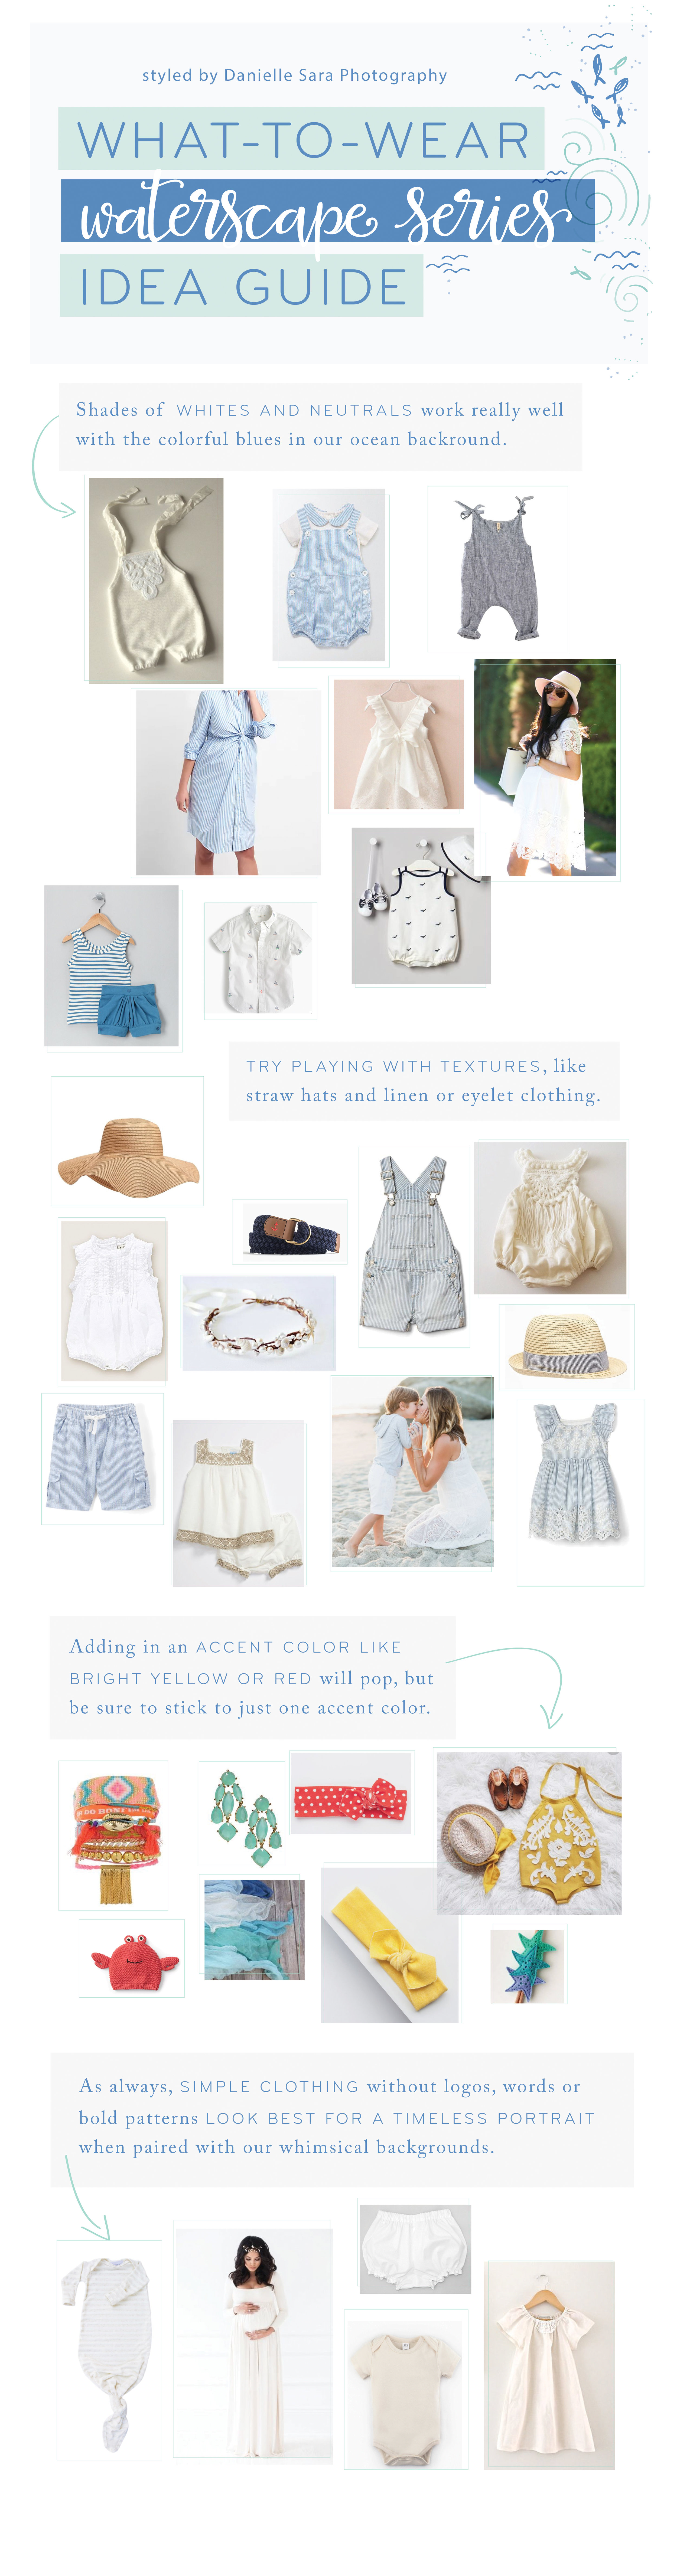 what to wear guide for blues, whites and neutrals